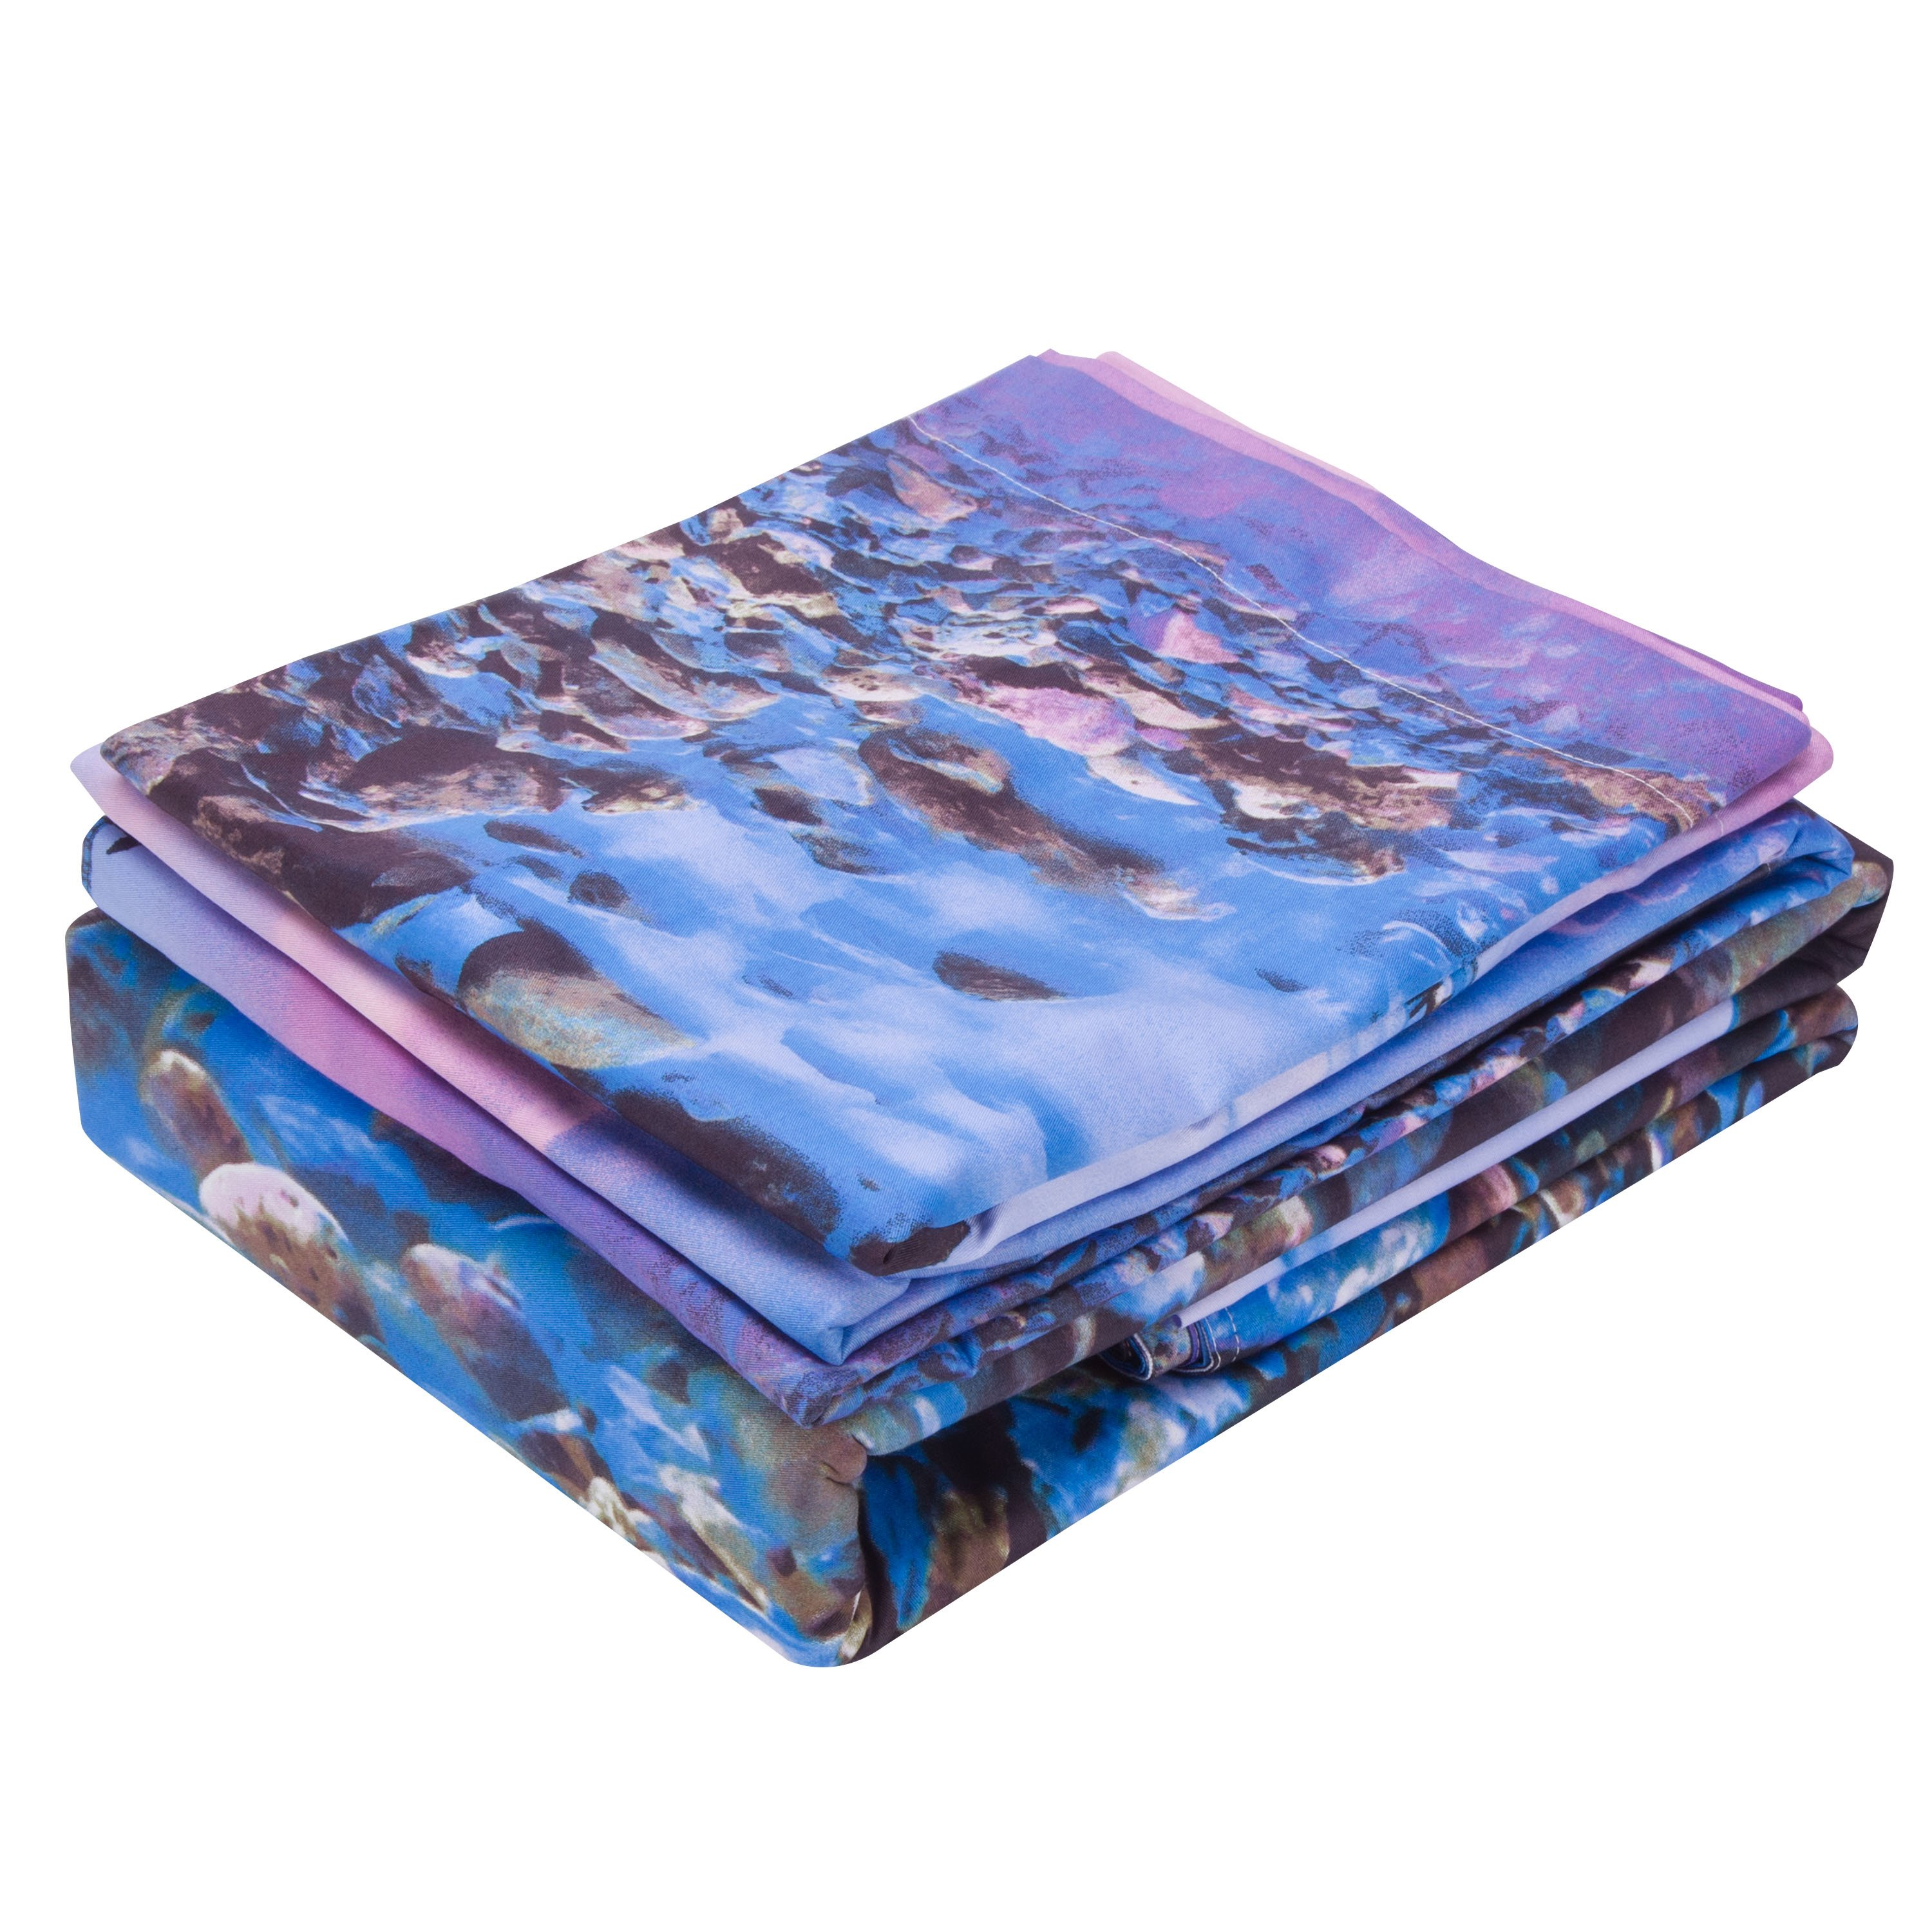 New Arrival Pebbles in the Mist Print 3D Bedding Sets